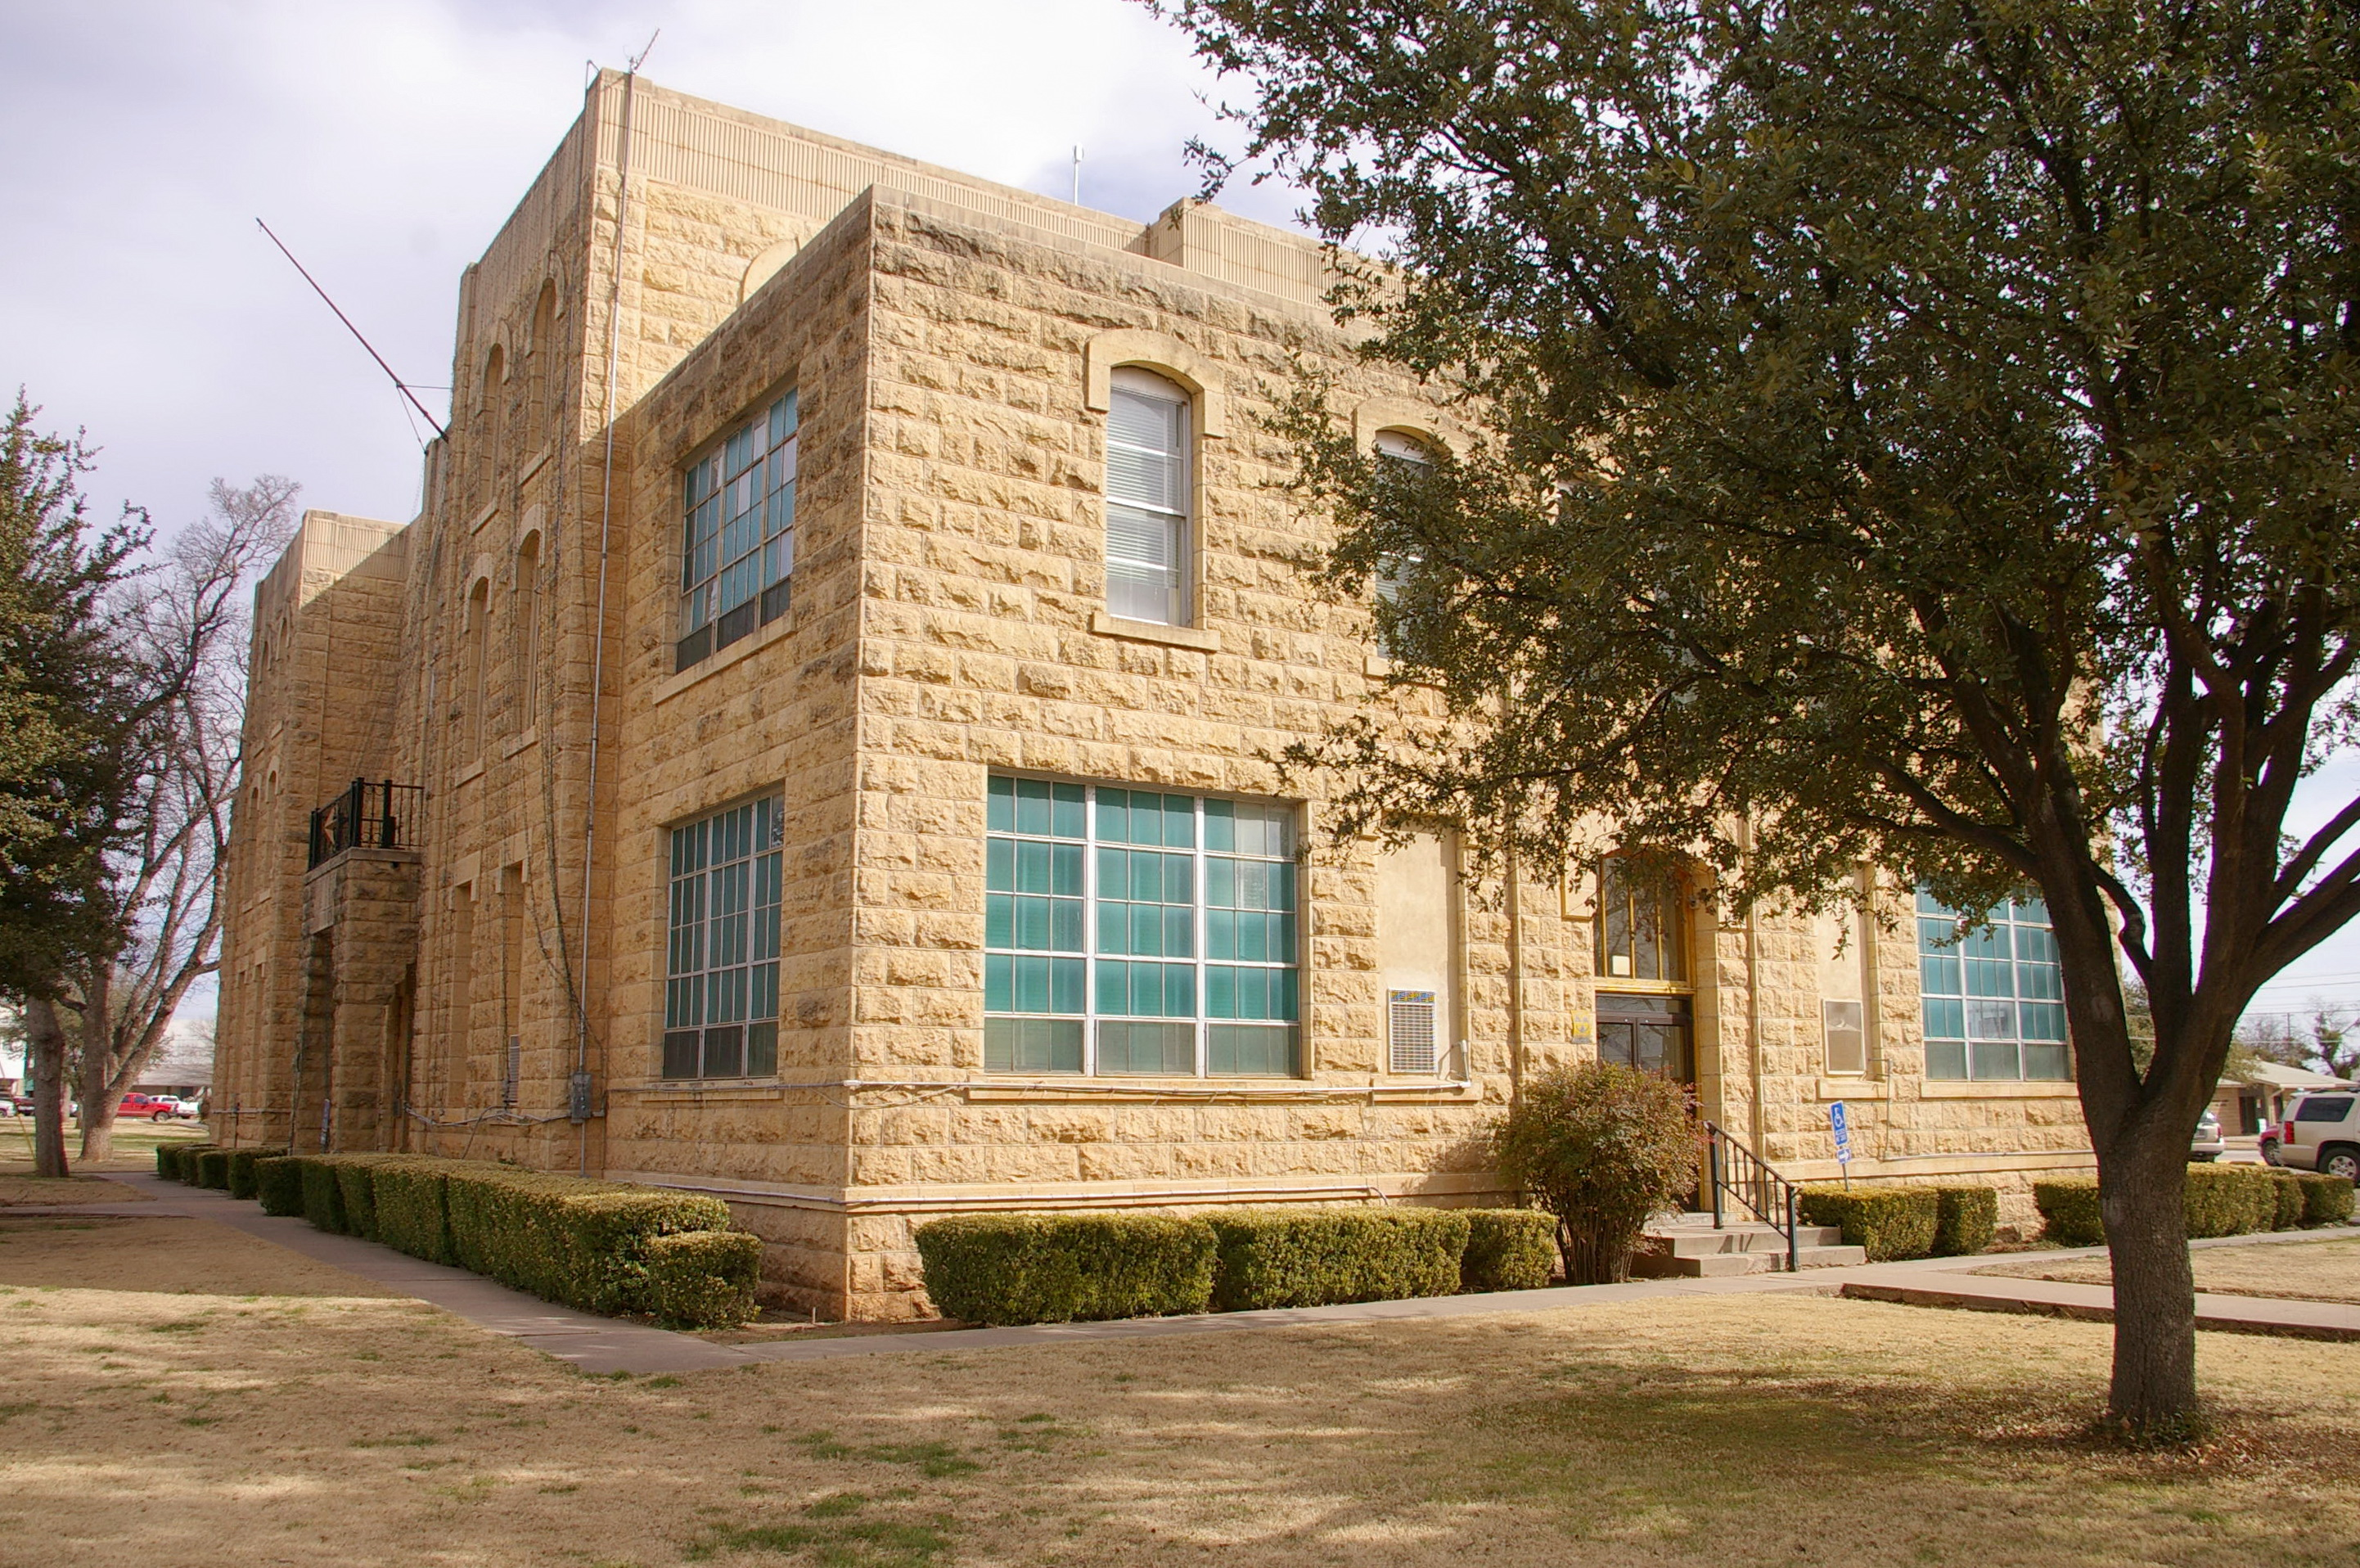 Runnels County Us Courthouses